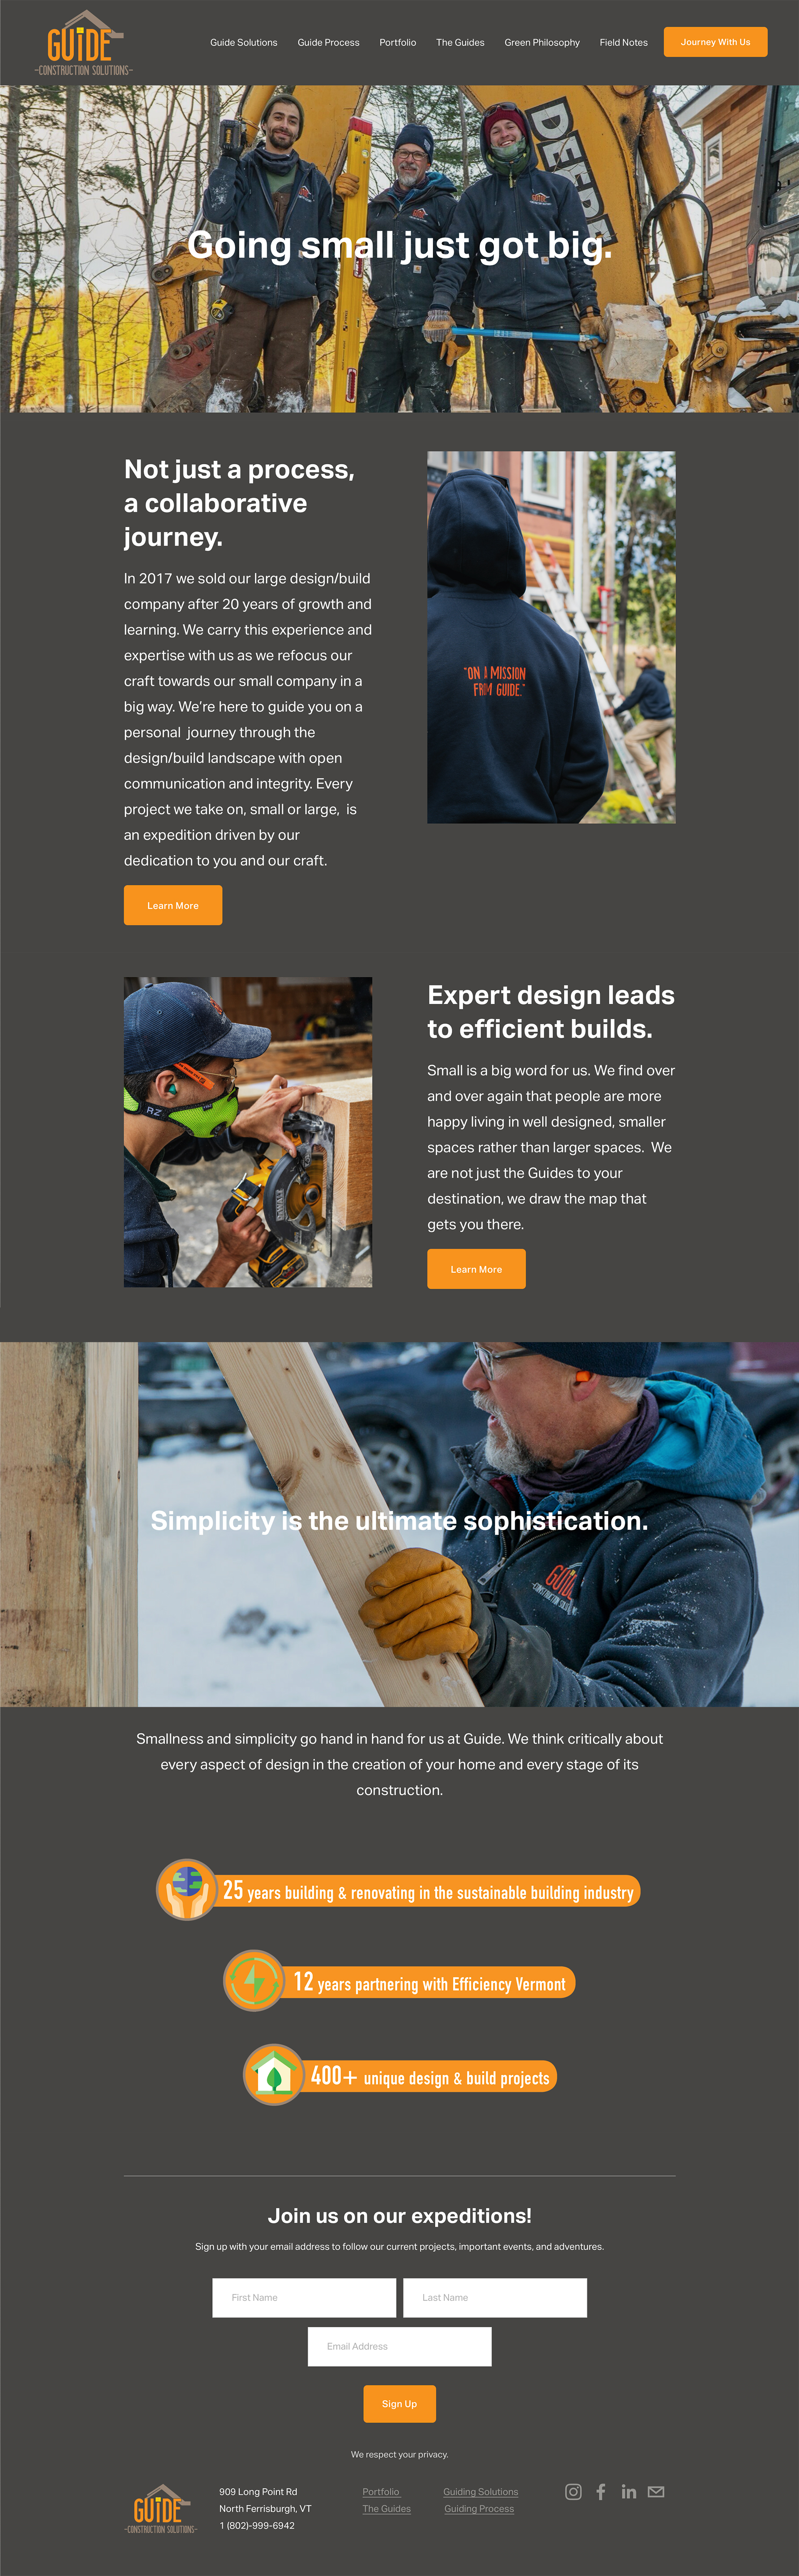 guide construction solutions website design by sundog creations